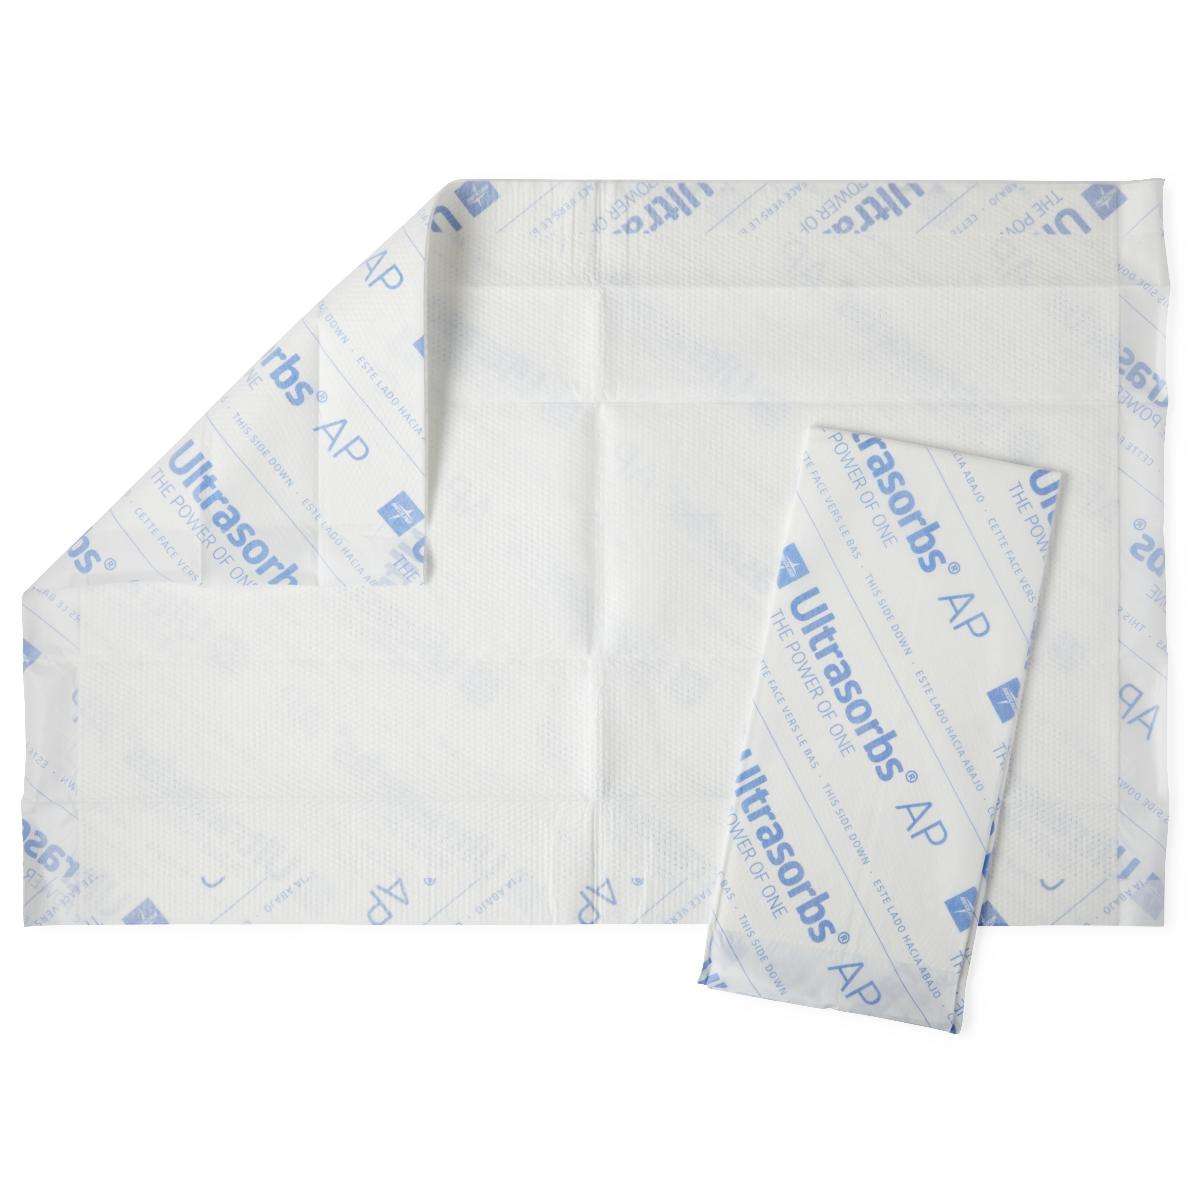 Ultrasorbs Air Permeable Drypad Underpads 30 x 36 - 40/Case